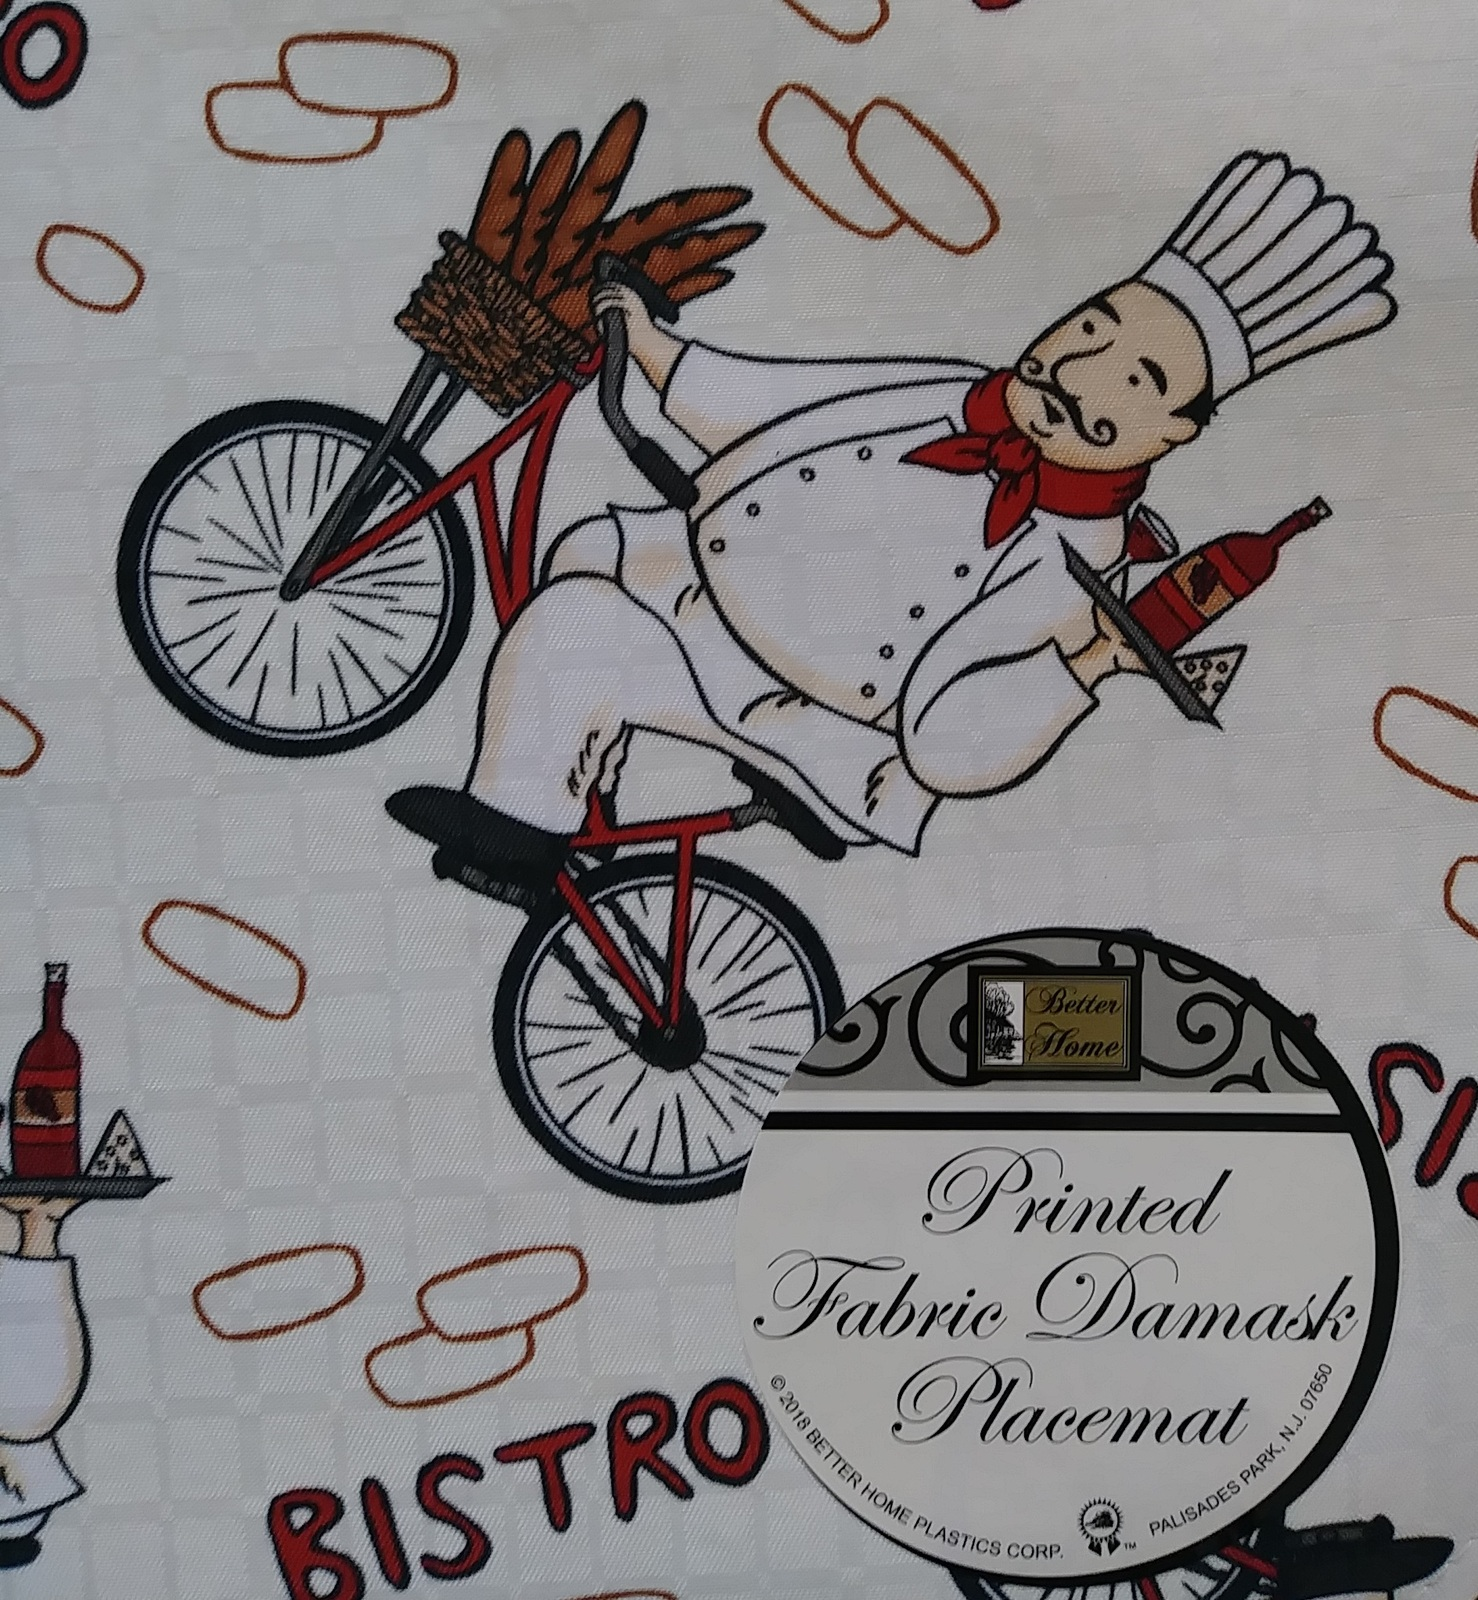 Fabric Placemats 4pc set with Fat Wine Chef on Bicycle, Cream Red Bistro